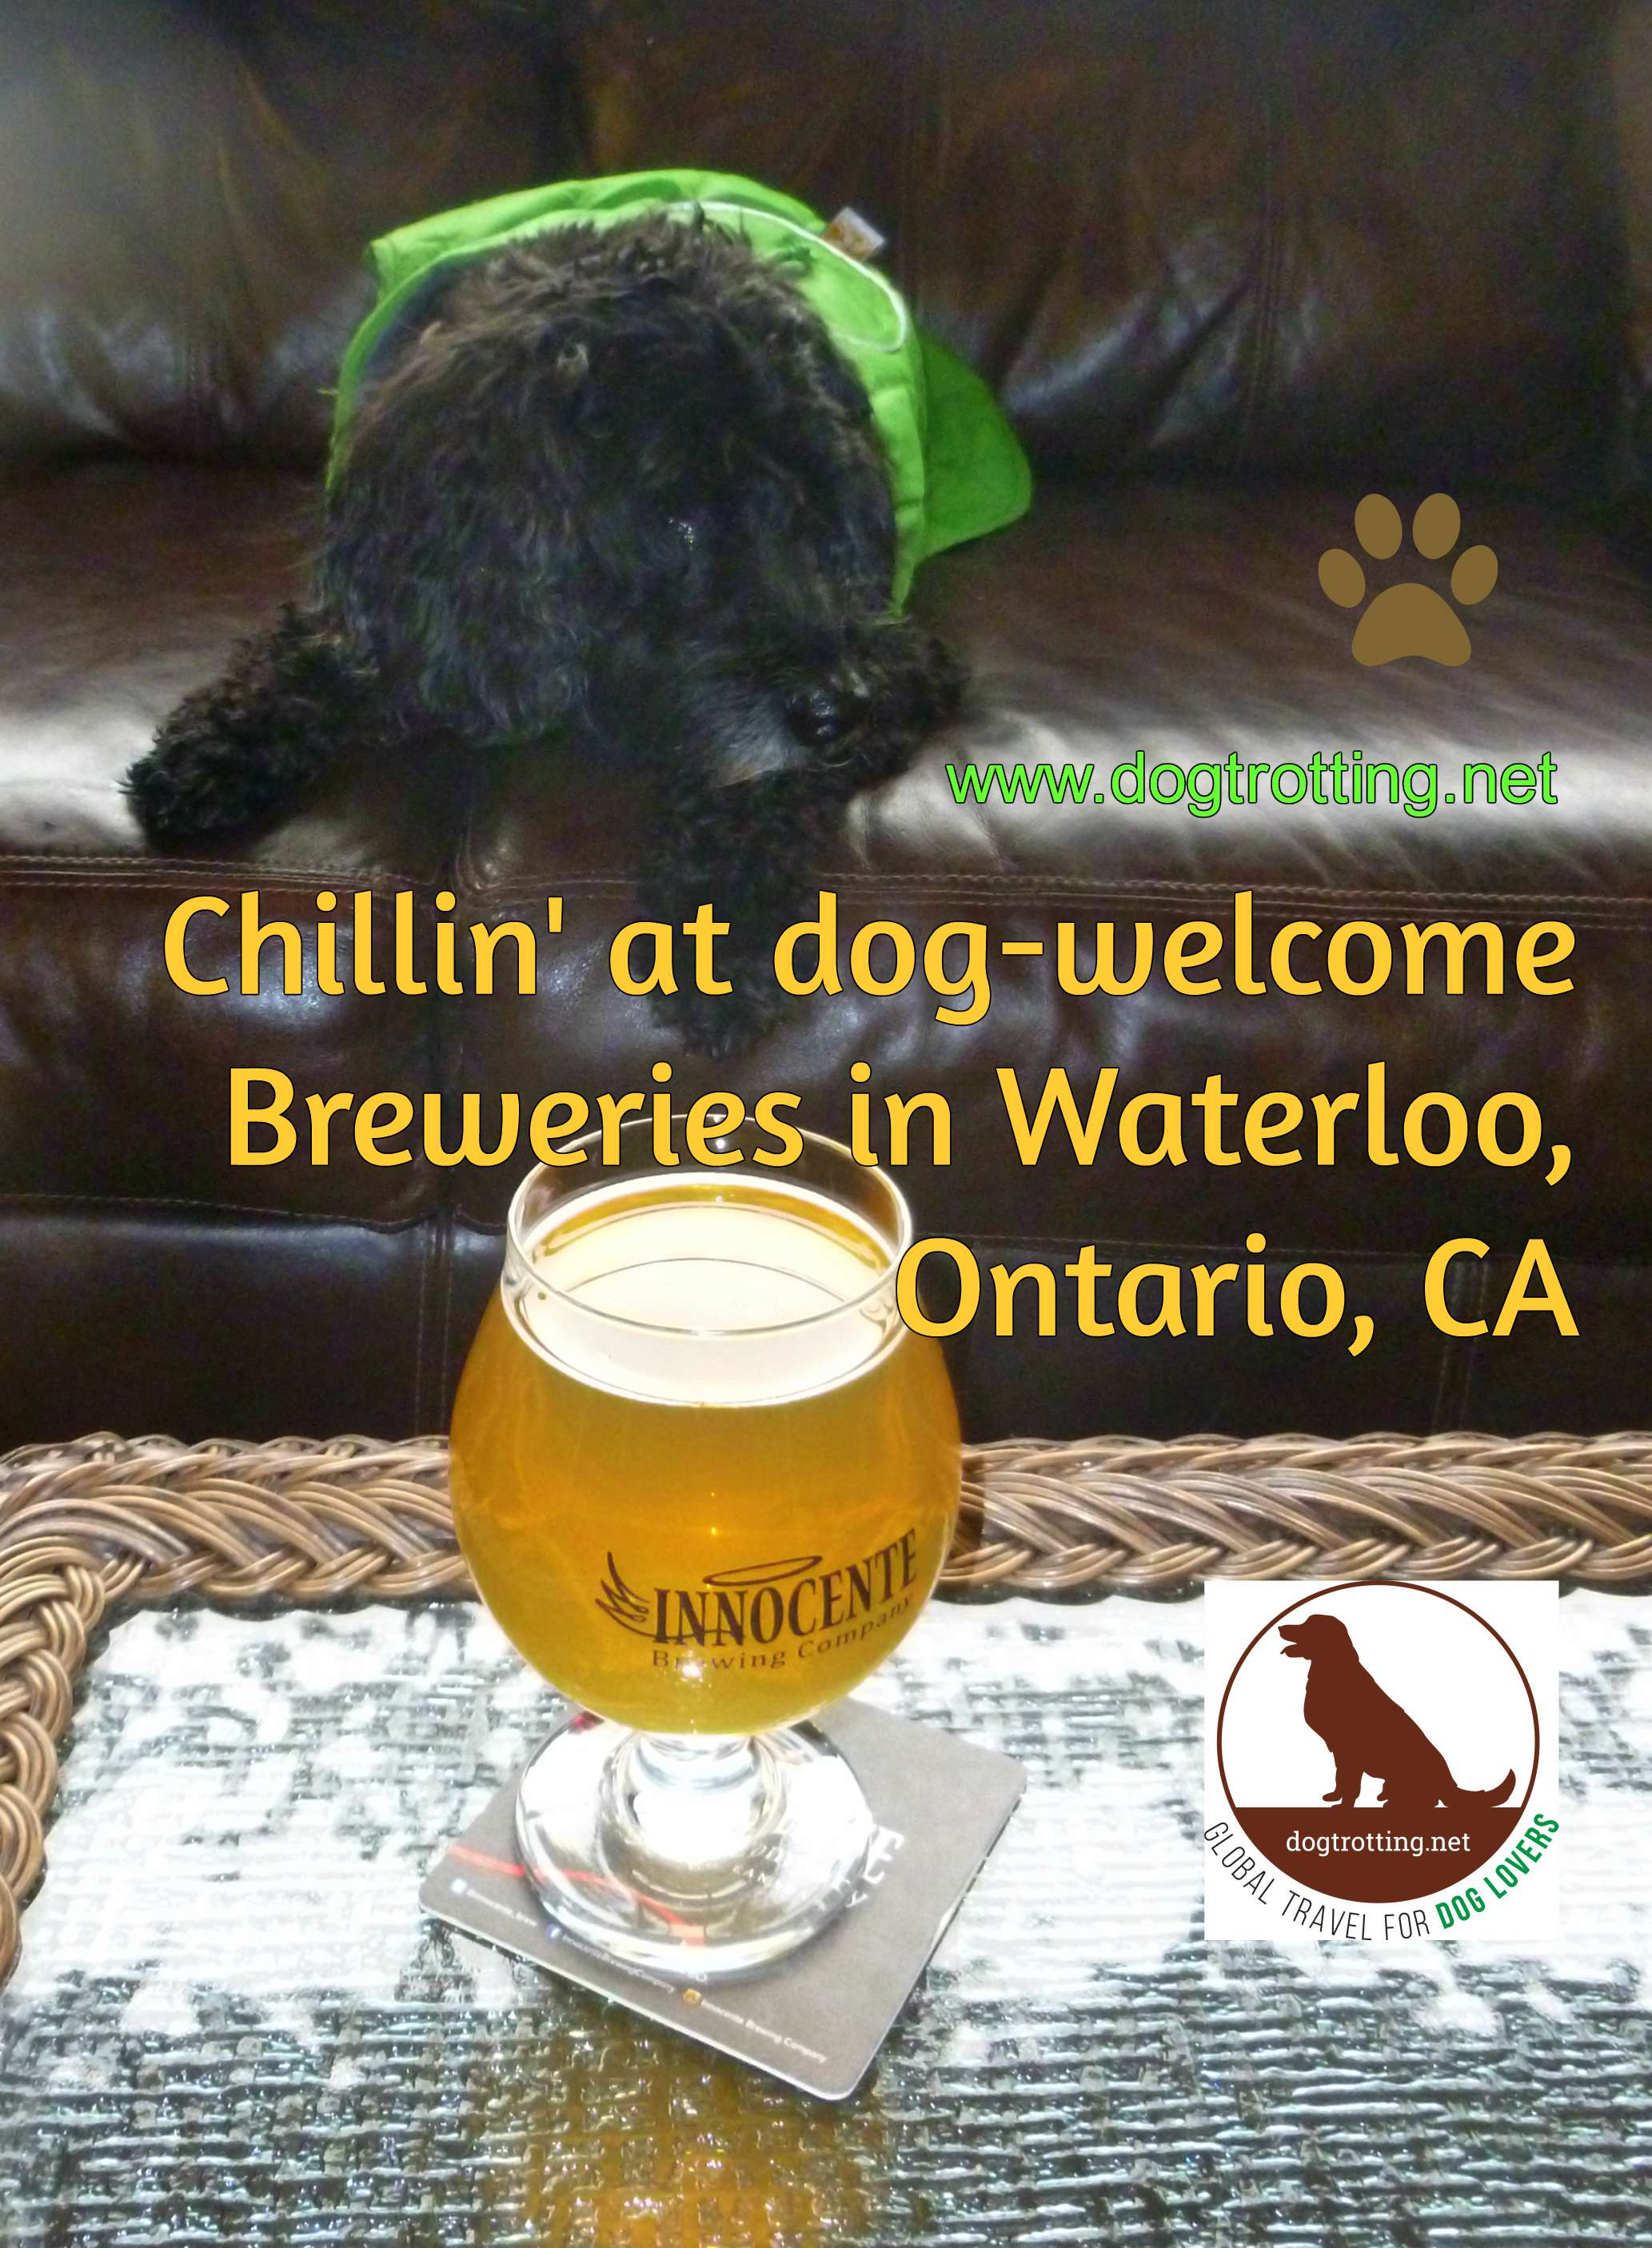 Travel Kitchener, ON: Innocente Dog-friendly Brewery. Cheers.